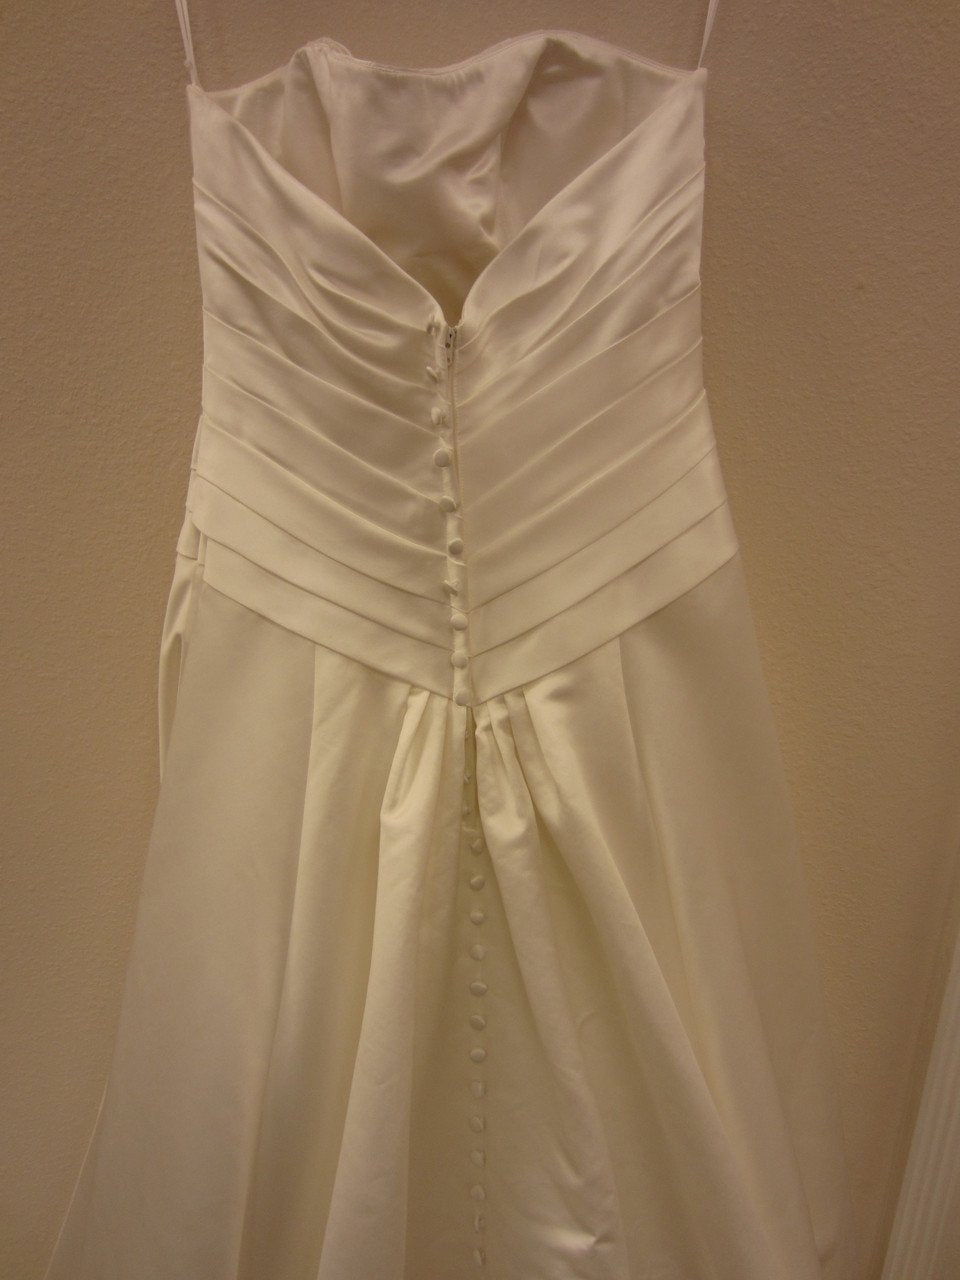 Allure 2312 Diamond White size 10 In Stock Wedding Dress - Tom's Bridal